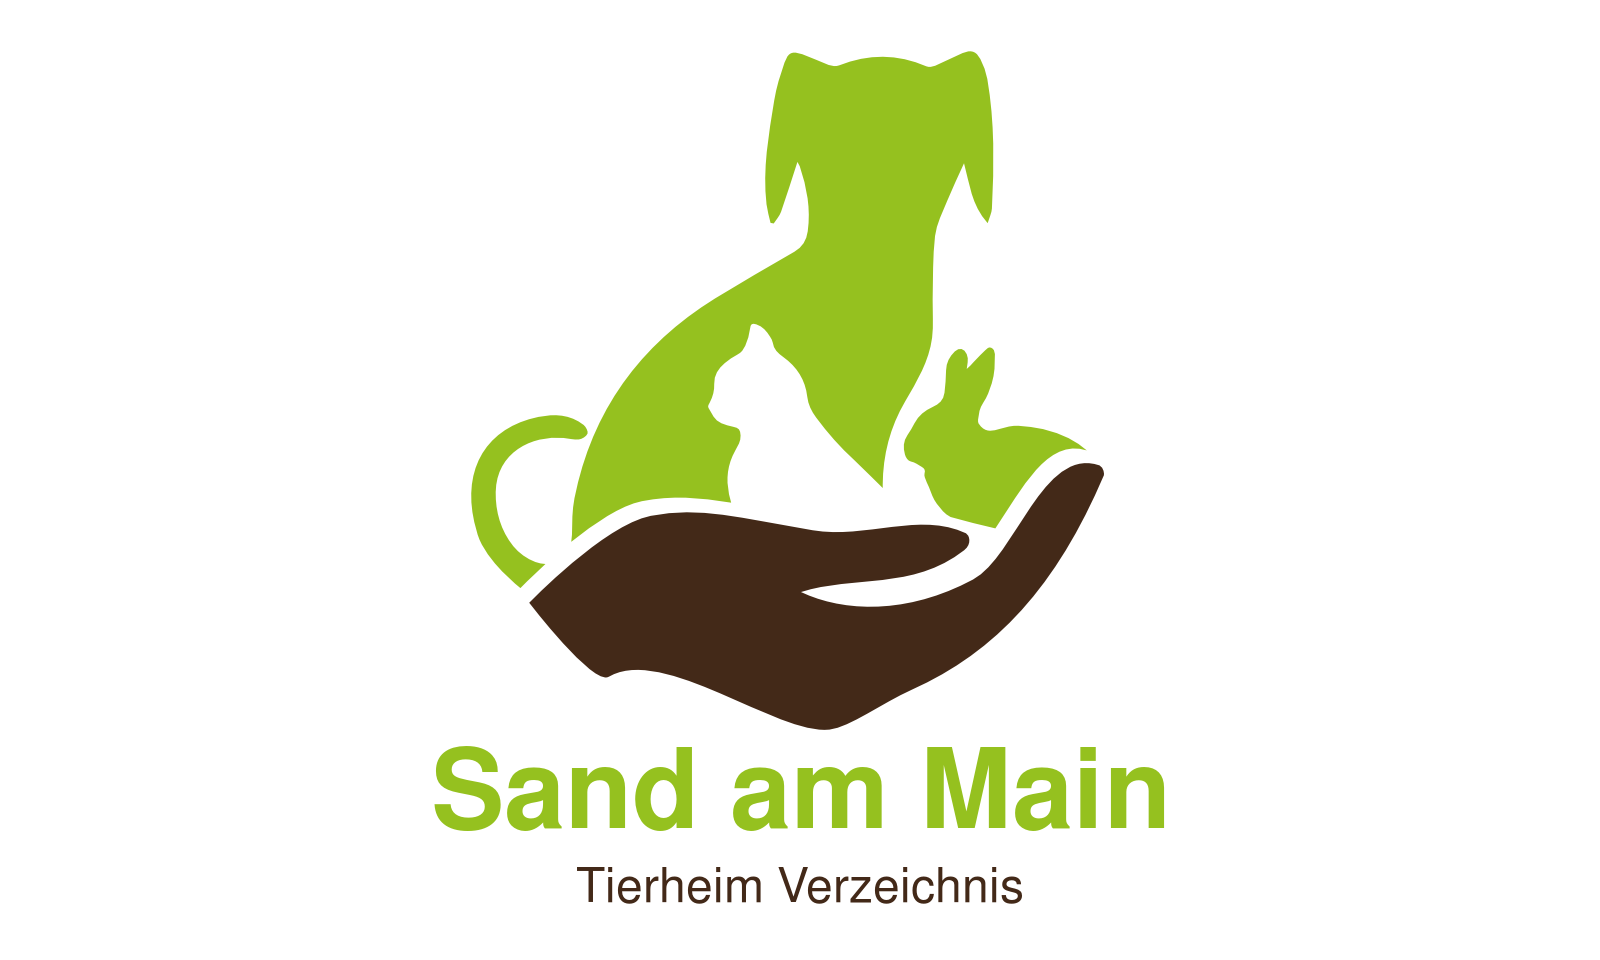 Tierheim Sand am Main